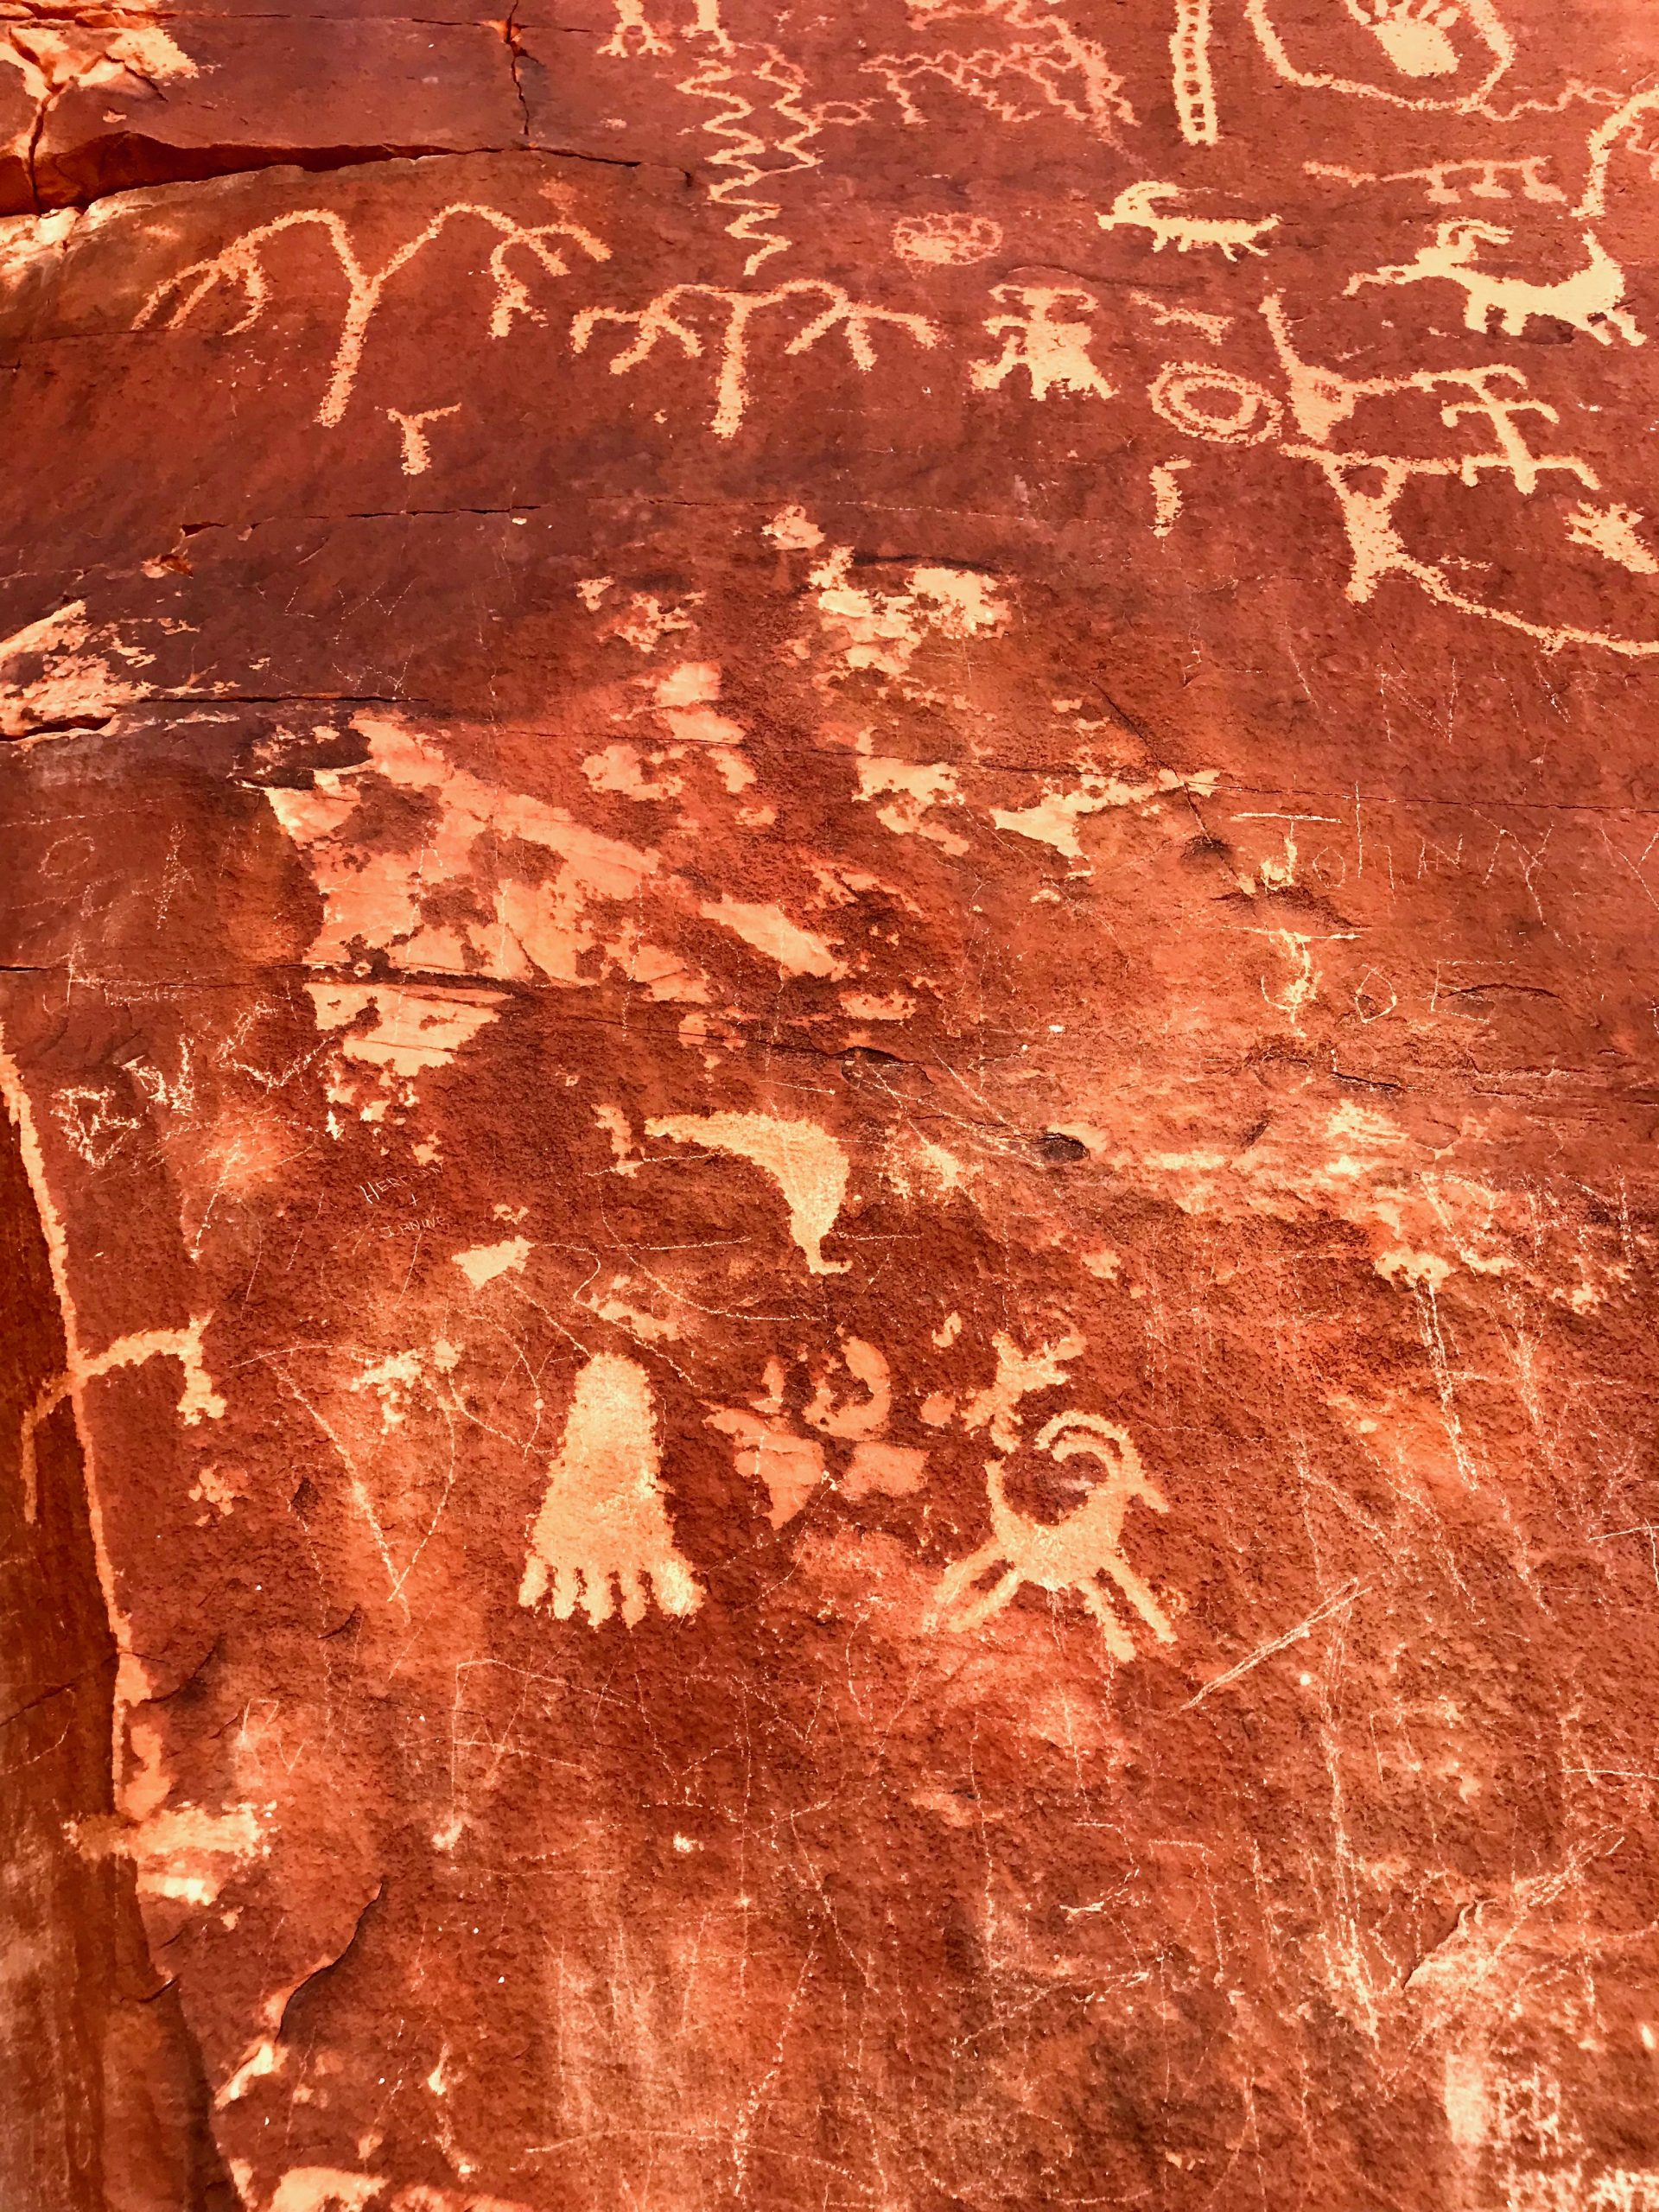 Petroglyphs at Valley of Fire State Park in Nevada